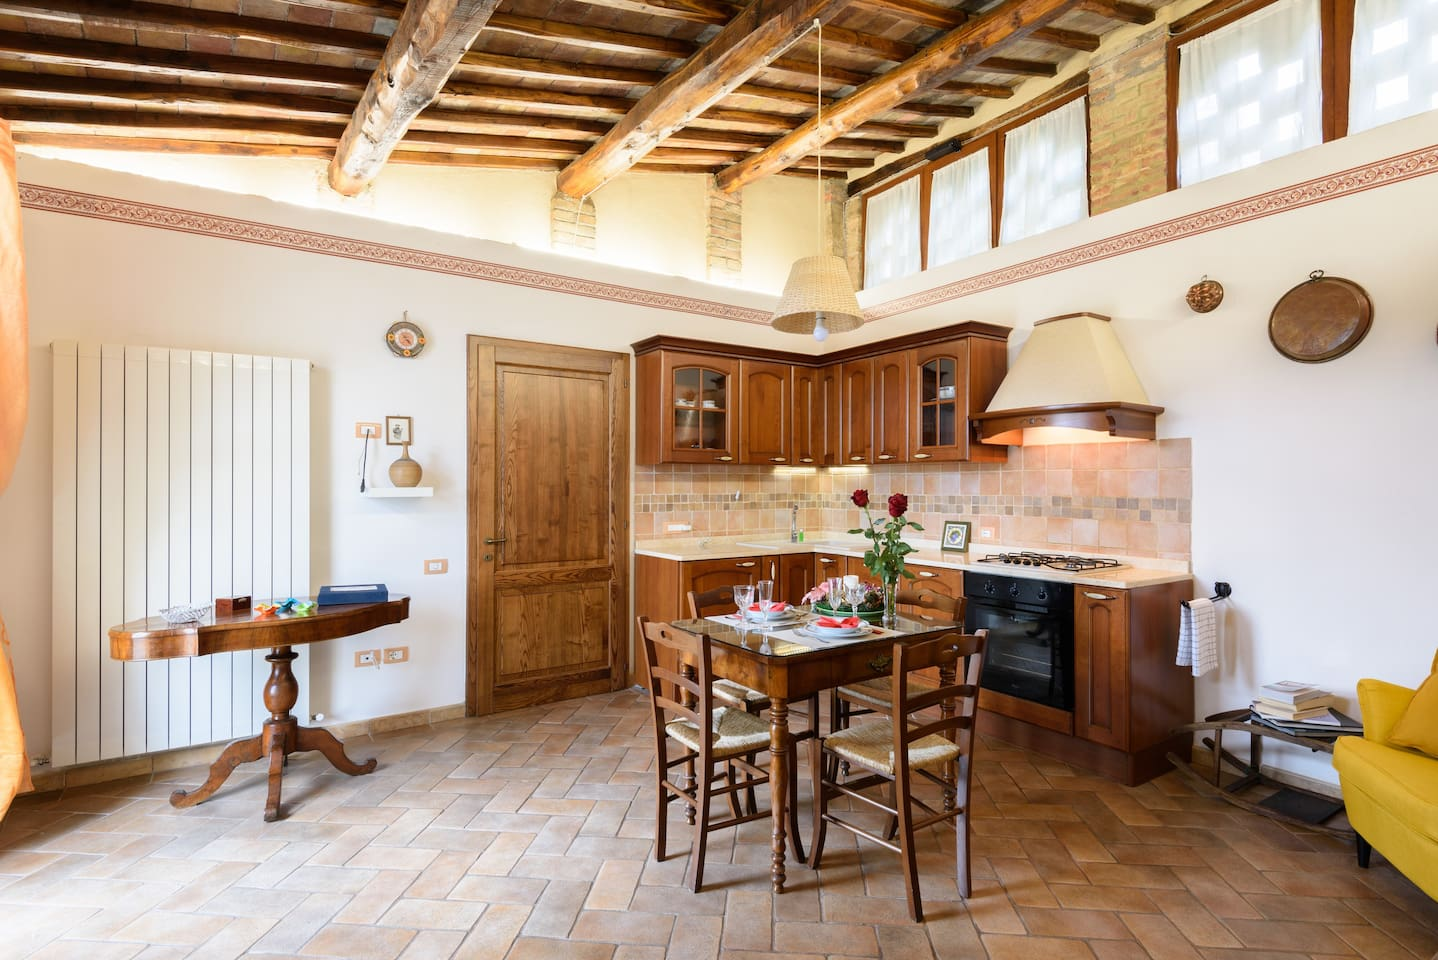 L'ingresso salotto, con angolo cottura attrezzato style country. La cura nei dettagli per la migliore esperienza di qualità. The entrance hall, with a kitchenette equipped country style. Attention to detail for the best quality experience.